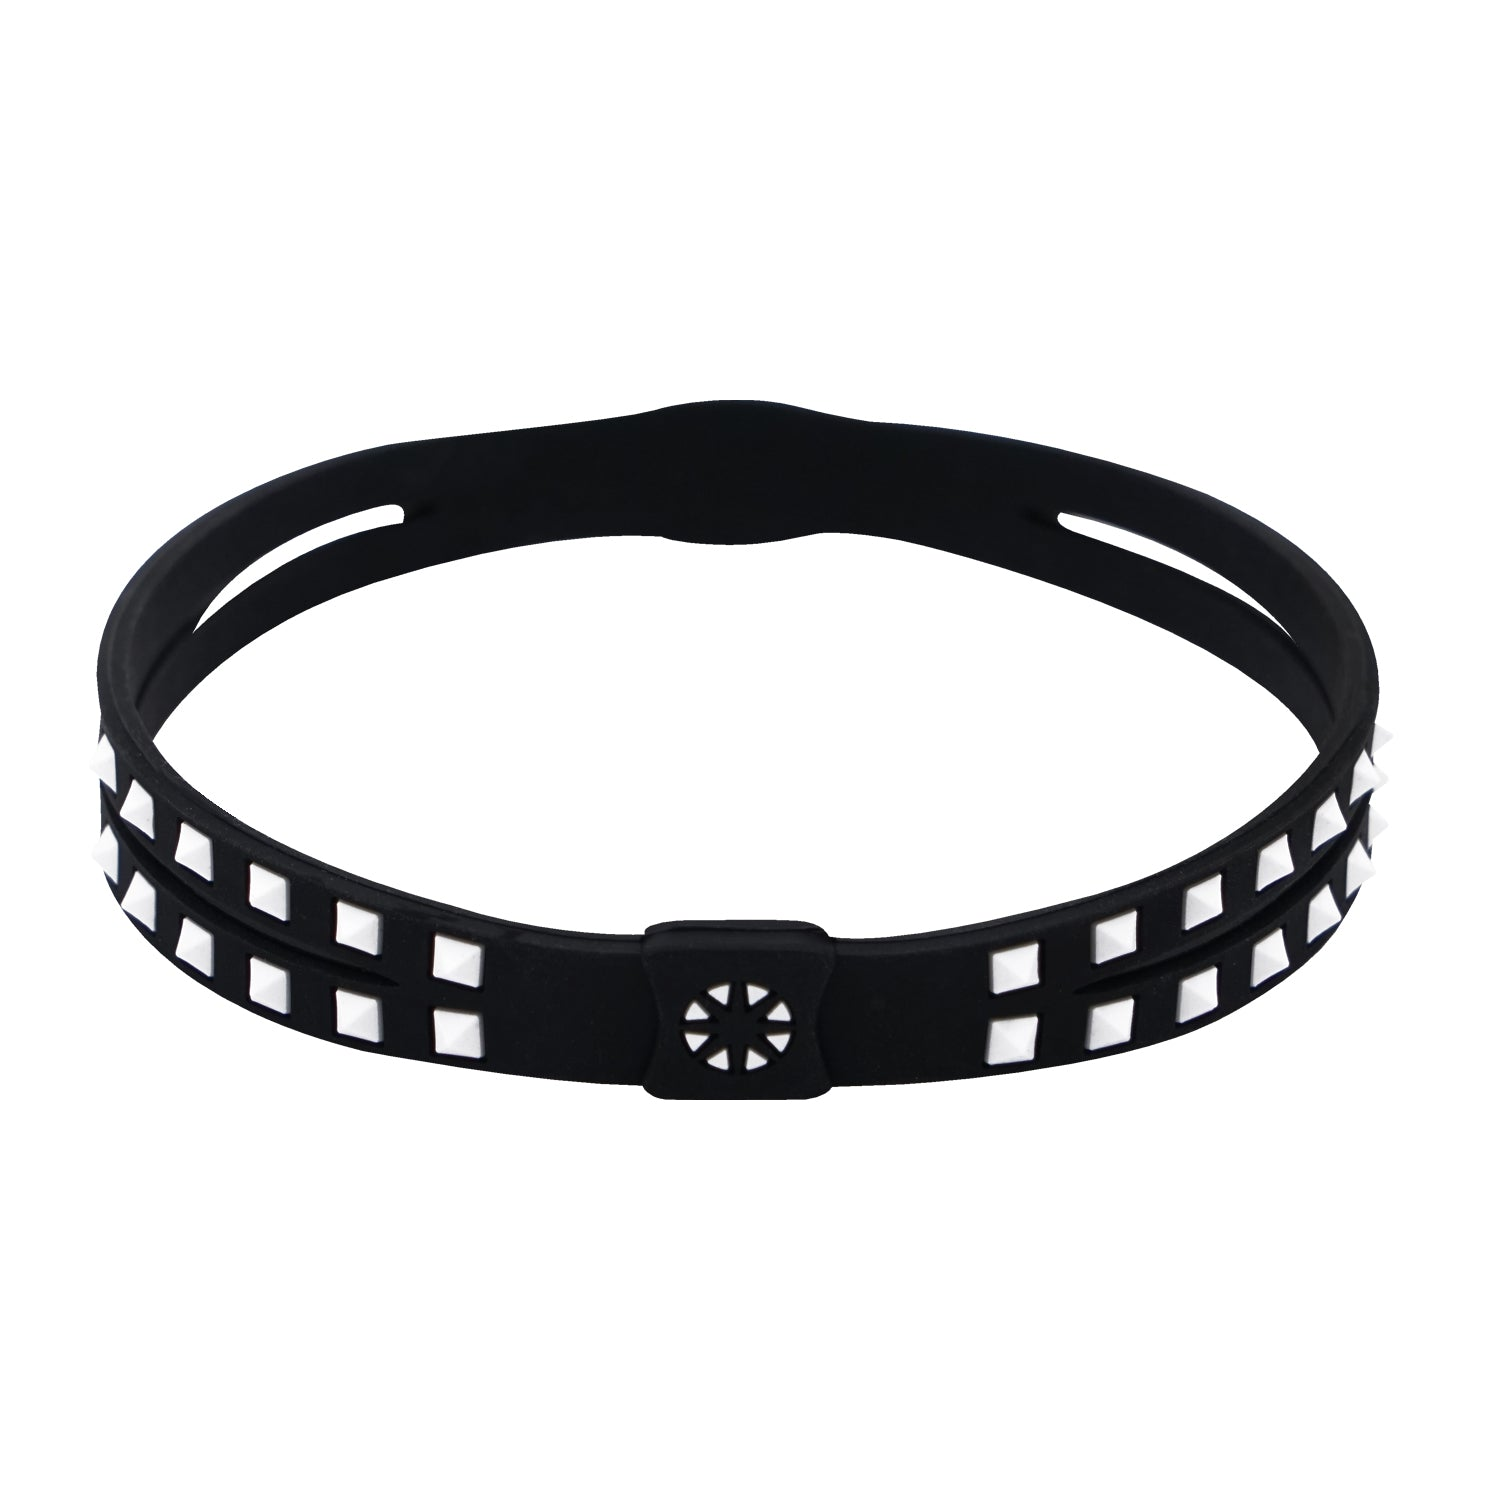 Bandel Studs Series Anklet Black/White